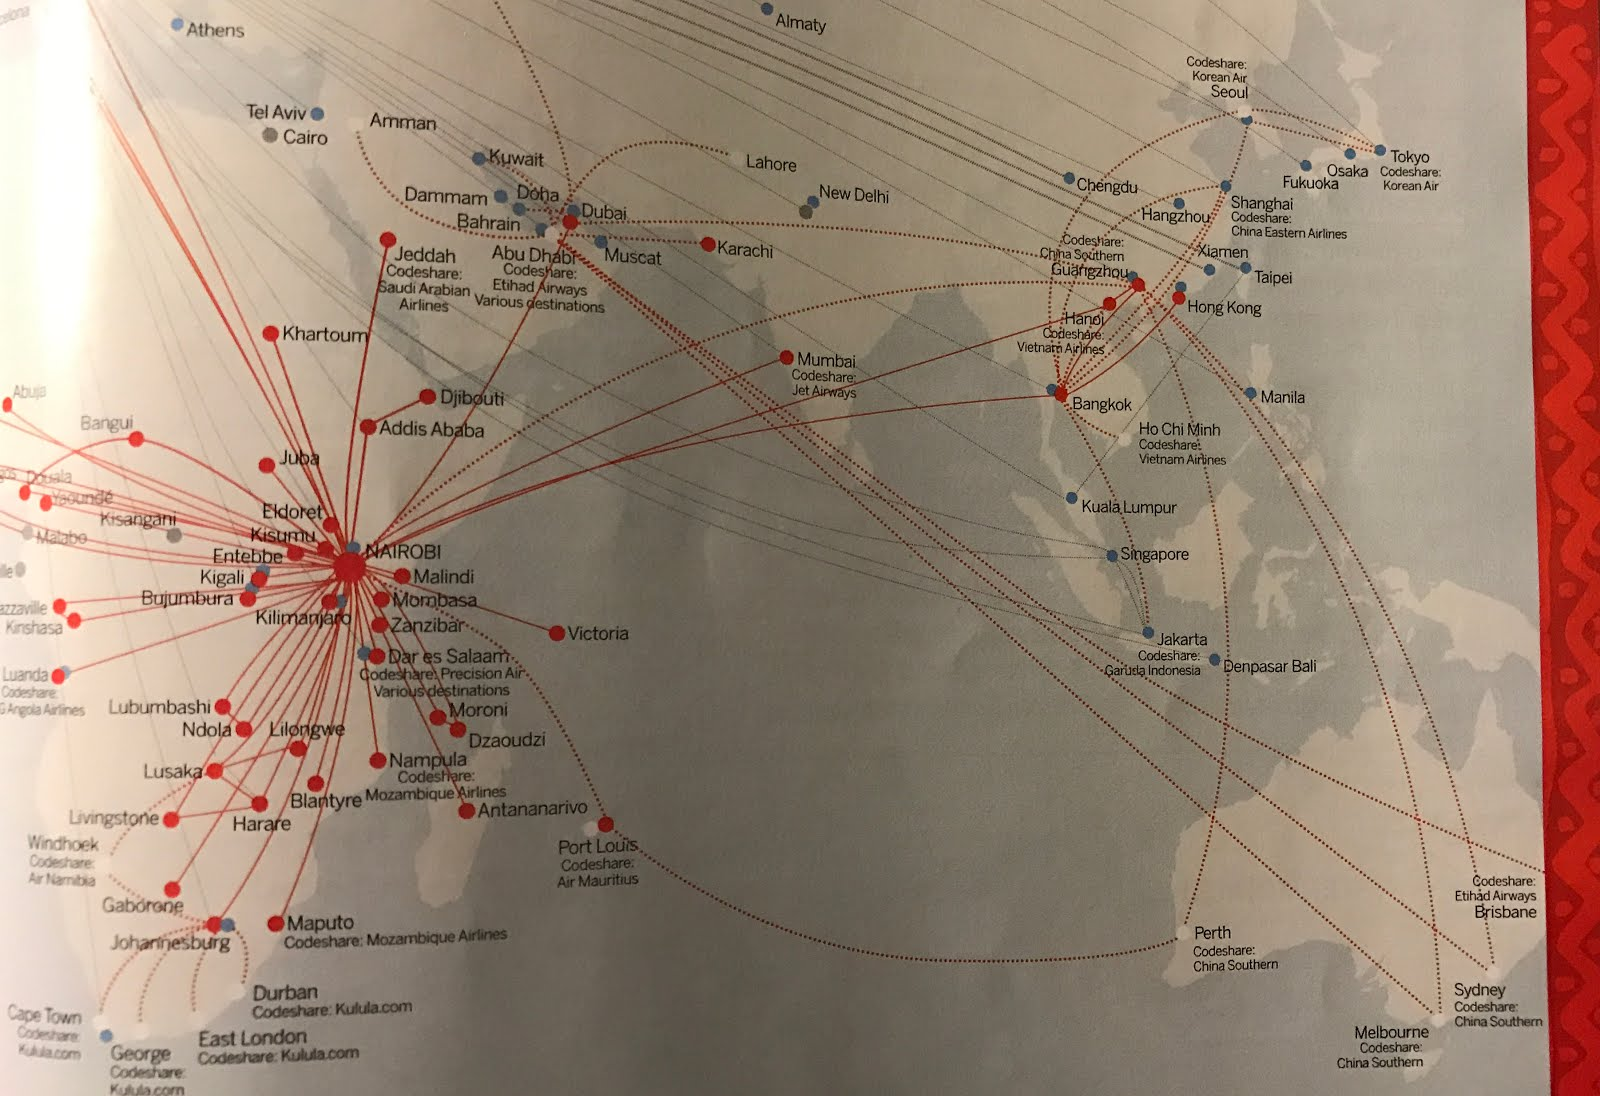 The Timetablist: Kenya Airways: The Asian Network, April 2016 on kenya resources, refugee route map, canada route map, republic route map, cuba route map, romania route map, england route map, dakar route map, united states route map, oman route map, navajo nation route map, china route map, english route map, kenya infrastructure, india route map, bermuda route map, qatar route map, africa route map, singapore route map, kenya festivals,